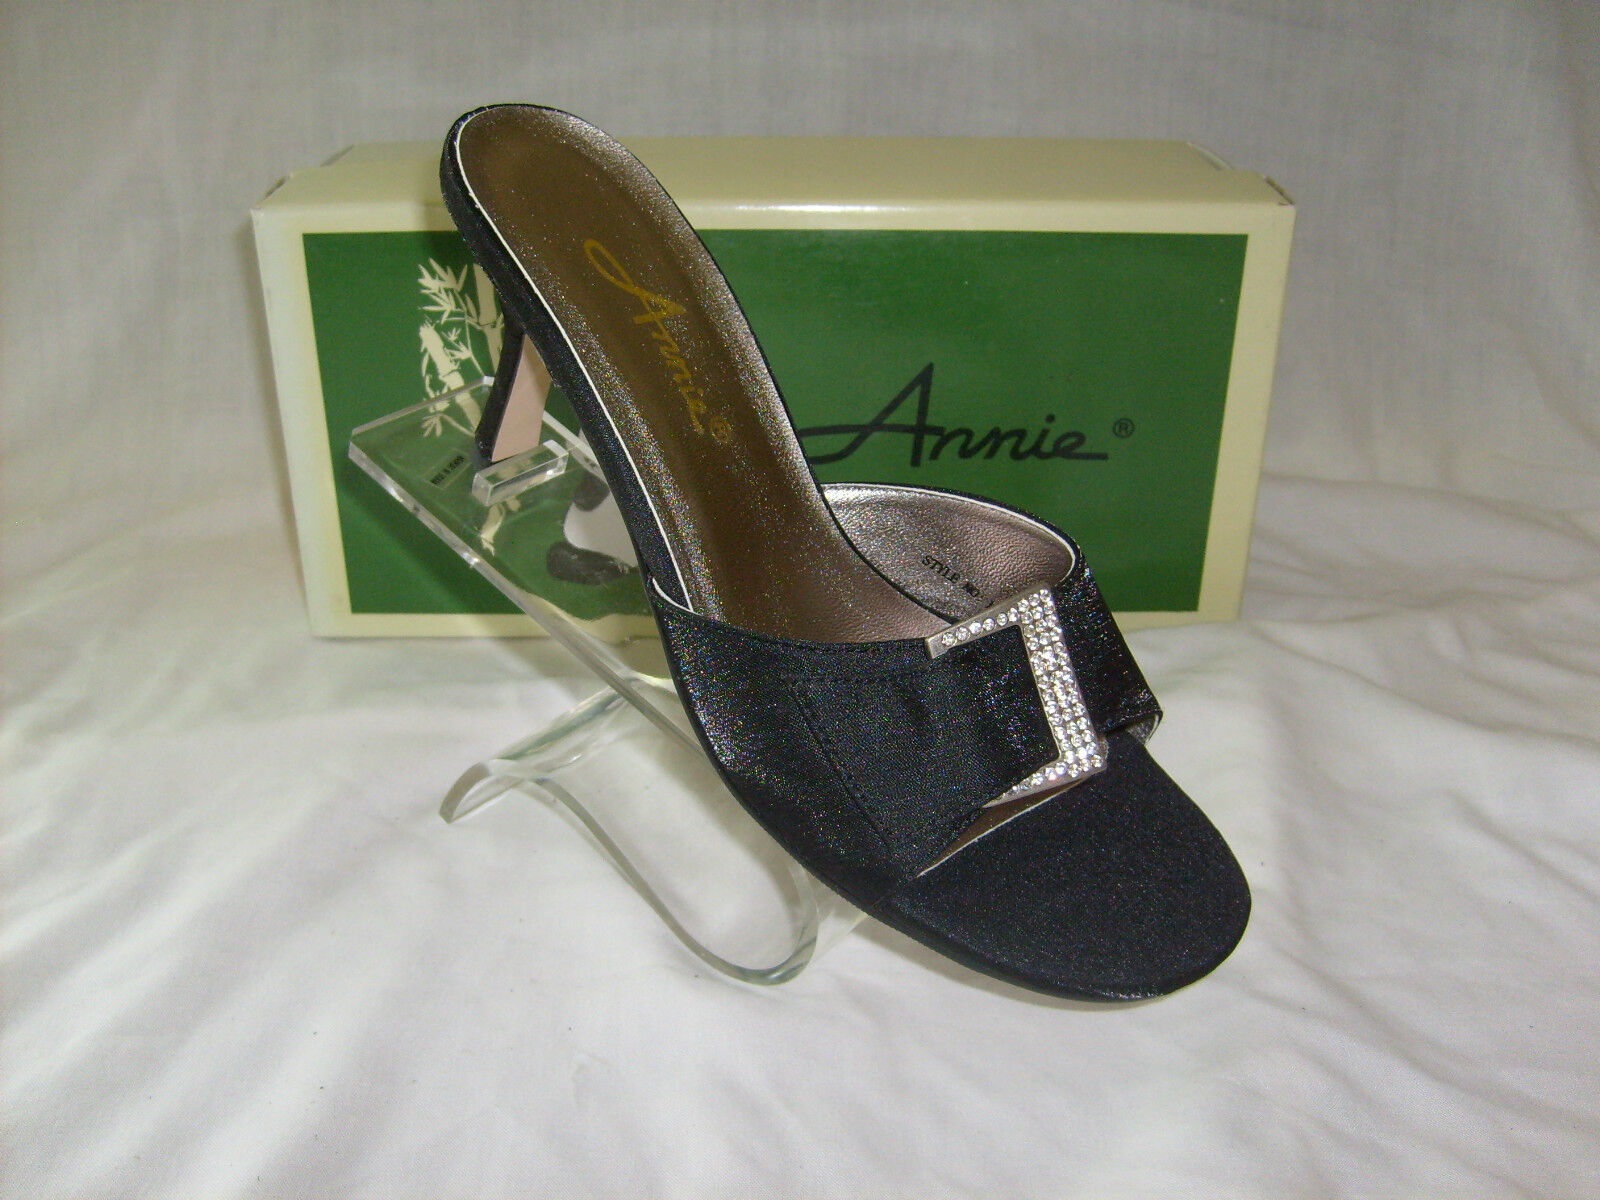 ANNIE (SIKA)  BLACK SATIN 3 INCH HEEL SIZE 7 MED NEW IN BOX